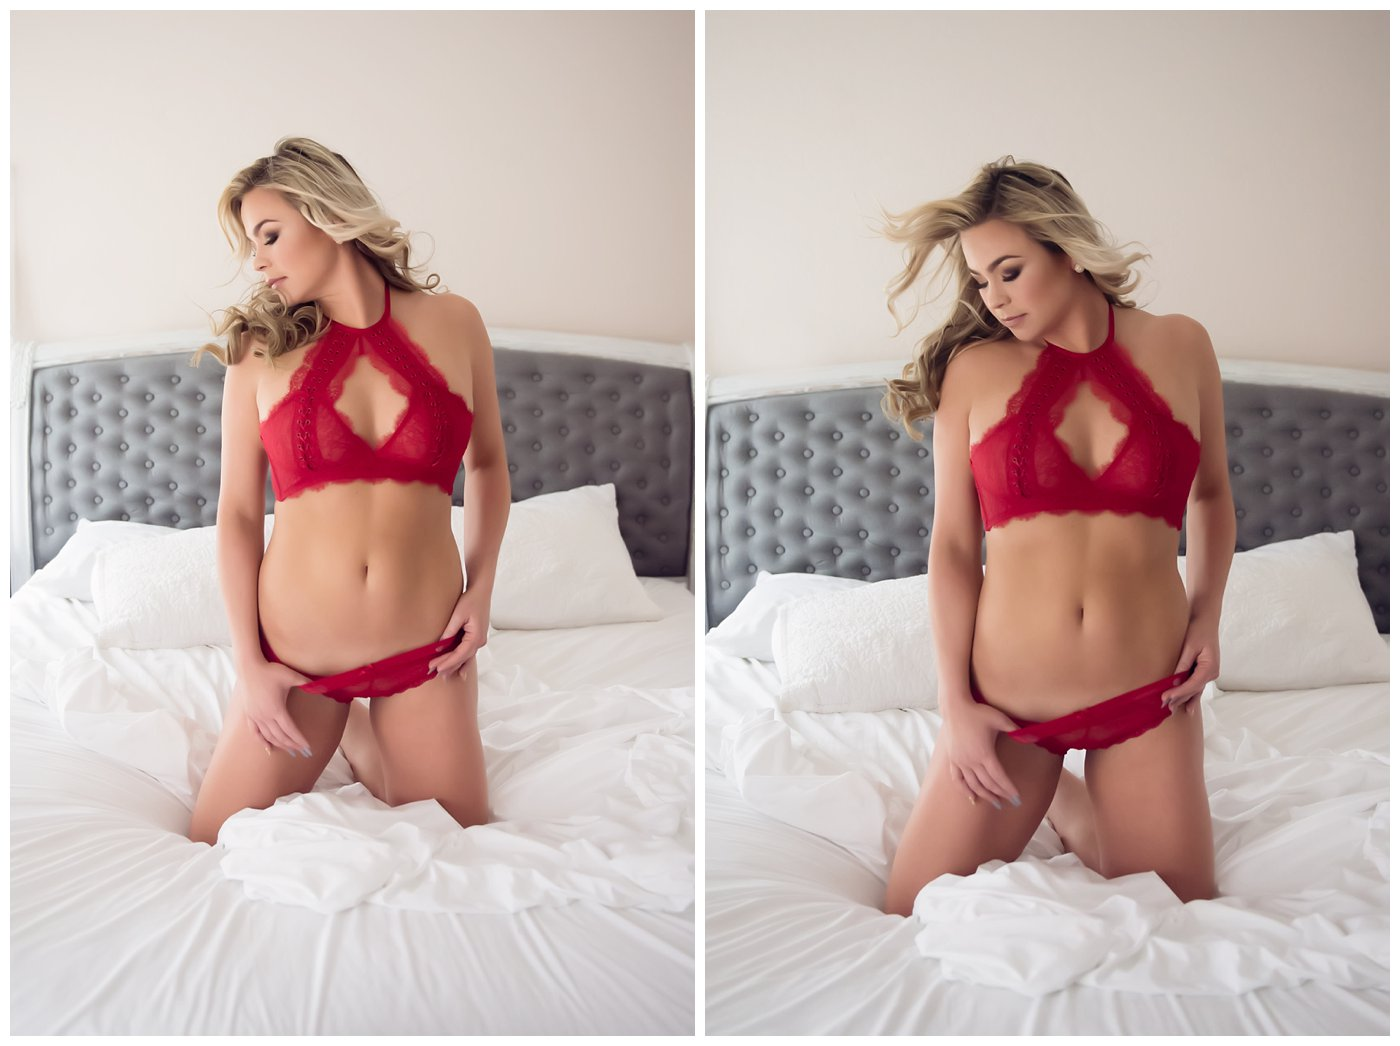 http://www.boudoirwithmary.com/wp-content/uploads/2018/01/2018-01-10_0009.jpg